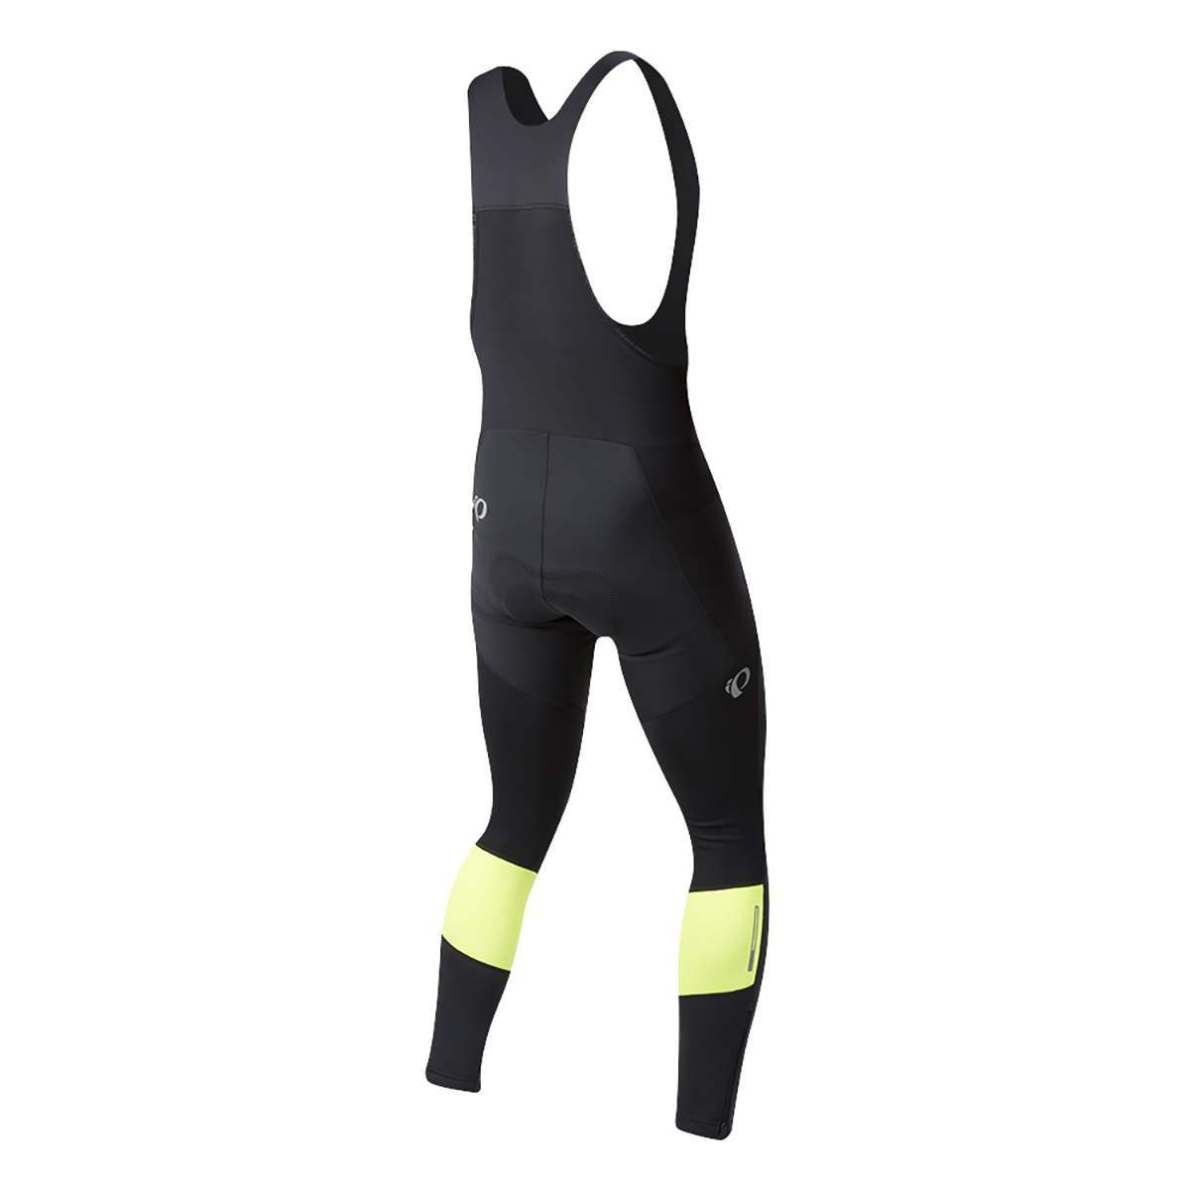 Elite Esc Amfib Cyc Bib Tight